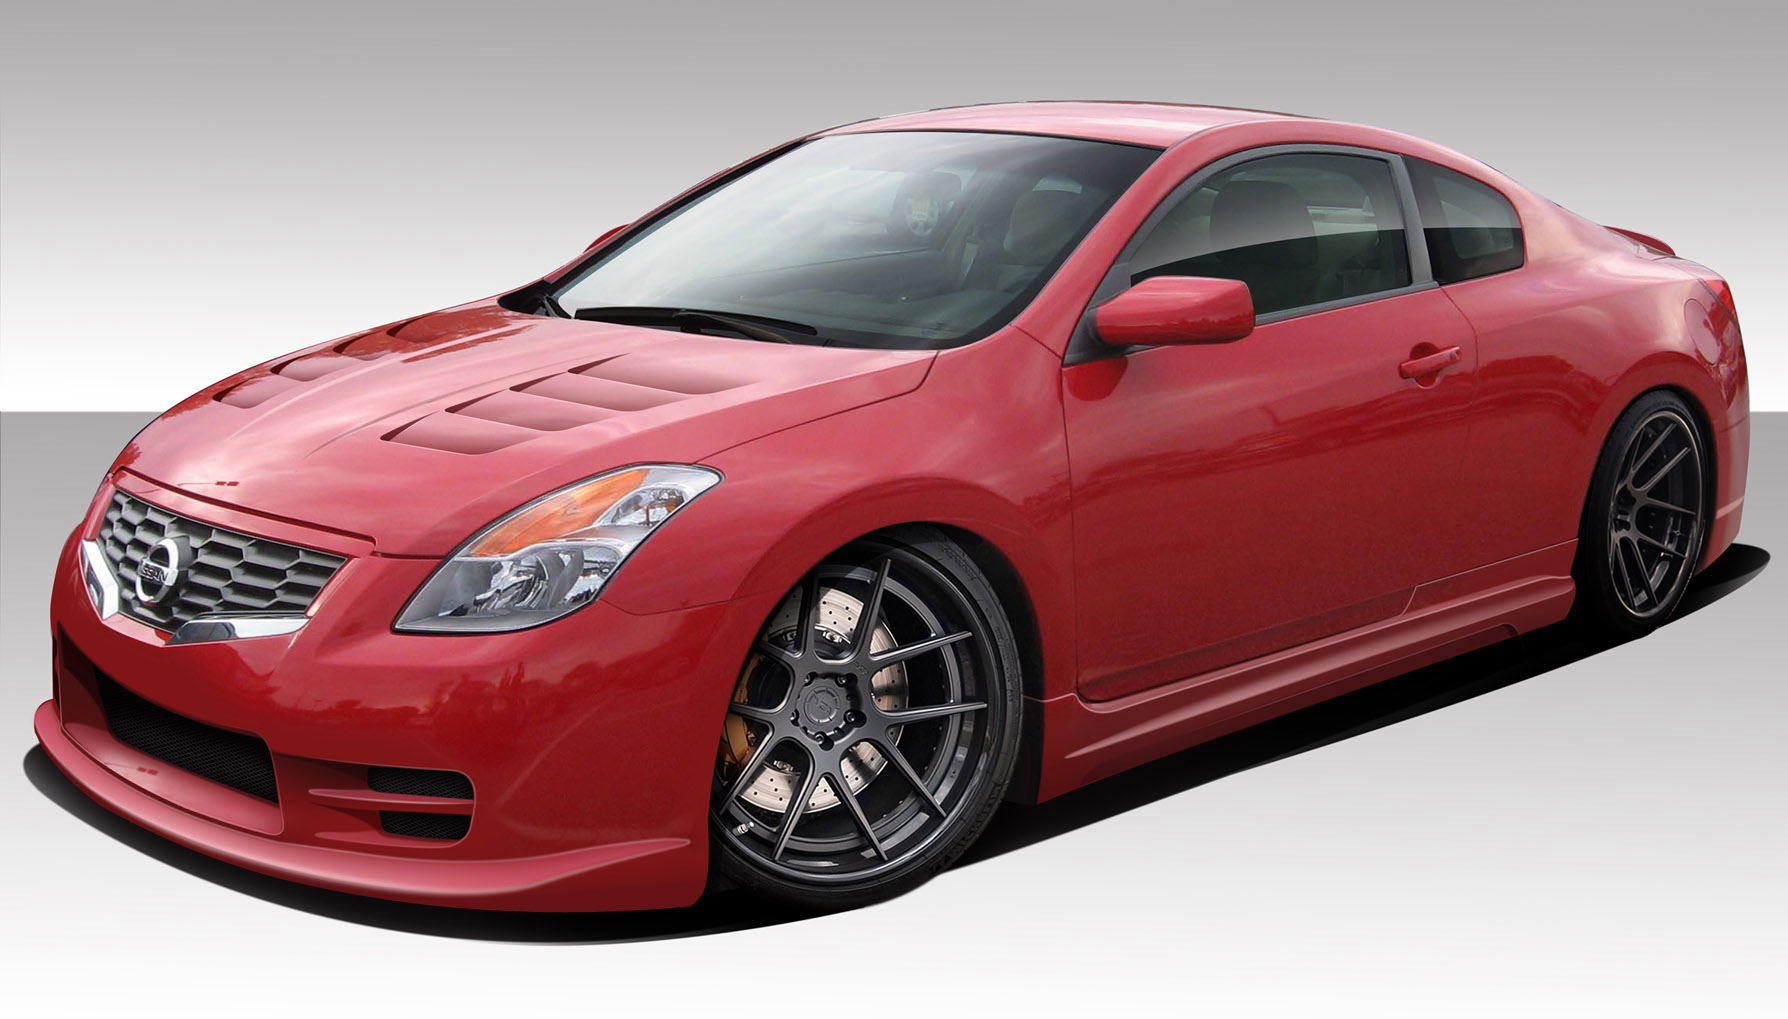 Welcome To Extreme Dimensions Item Group 2008 2009 Nissan Altima 2dr Duraflex Gt Concept